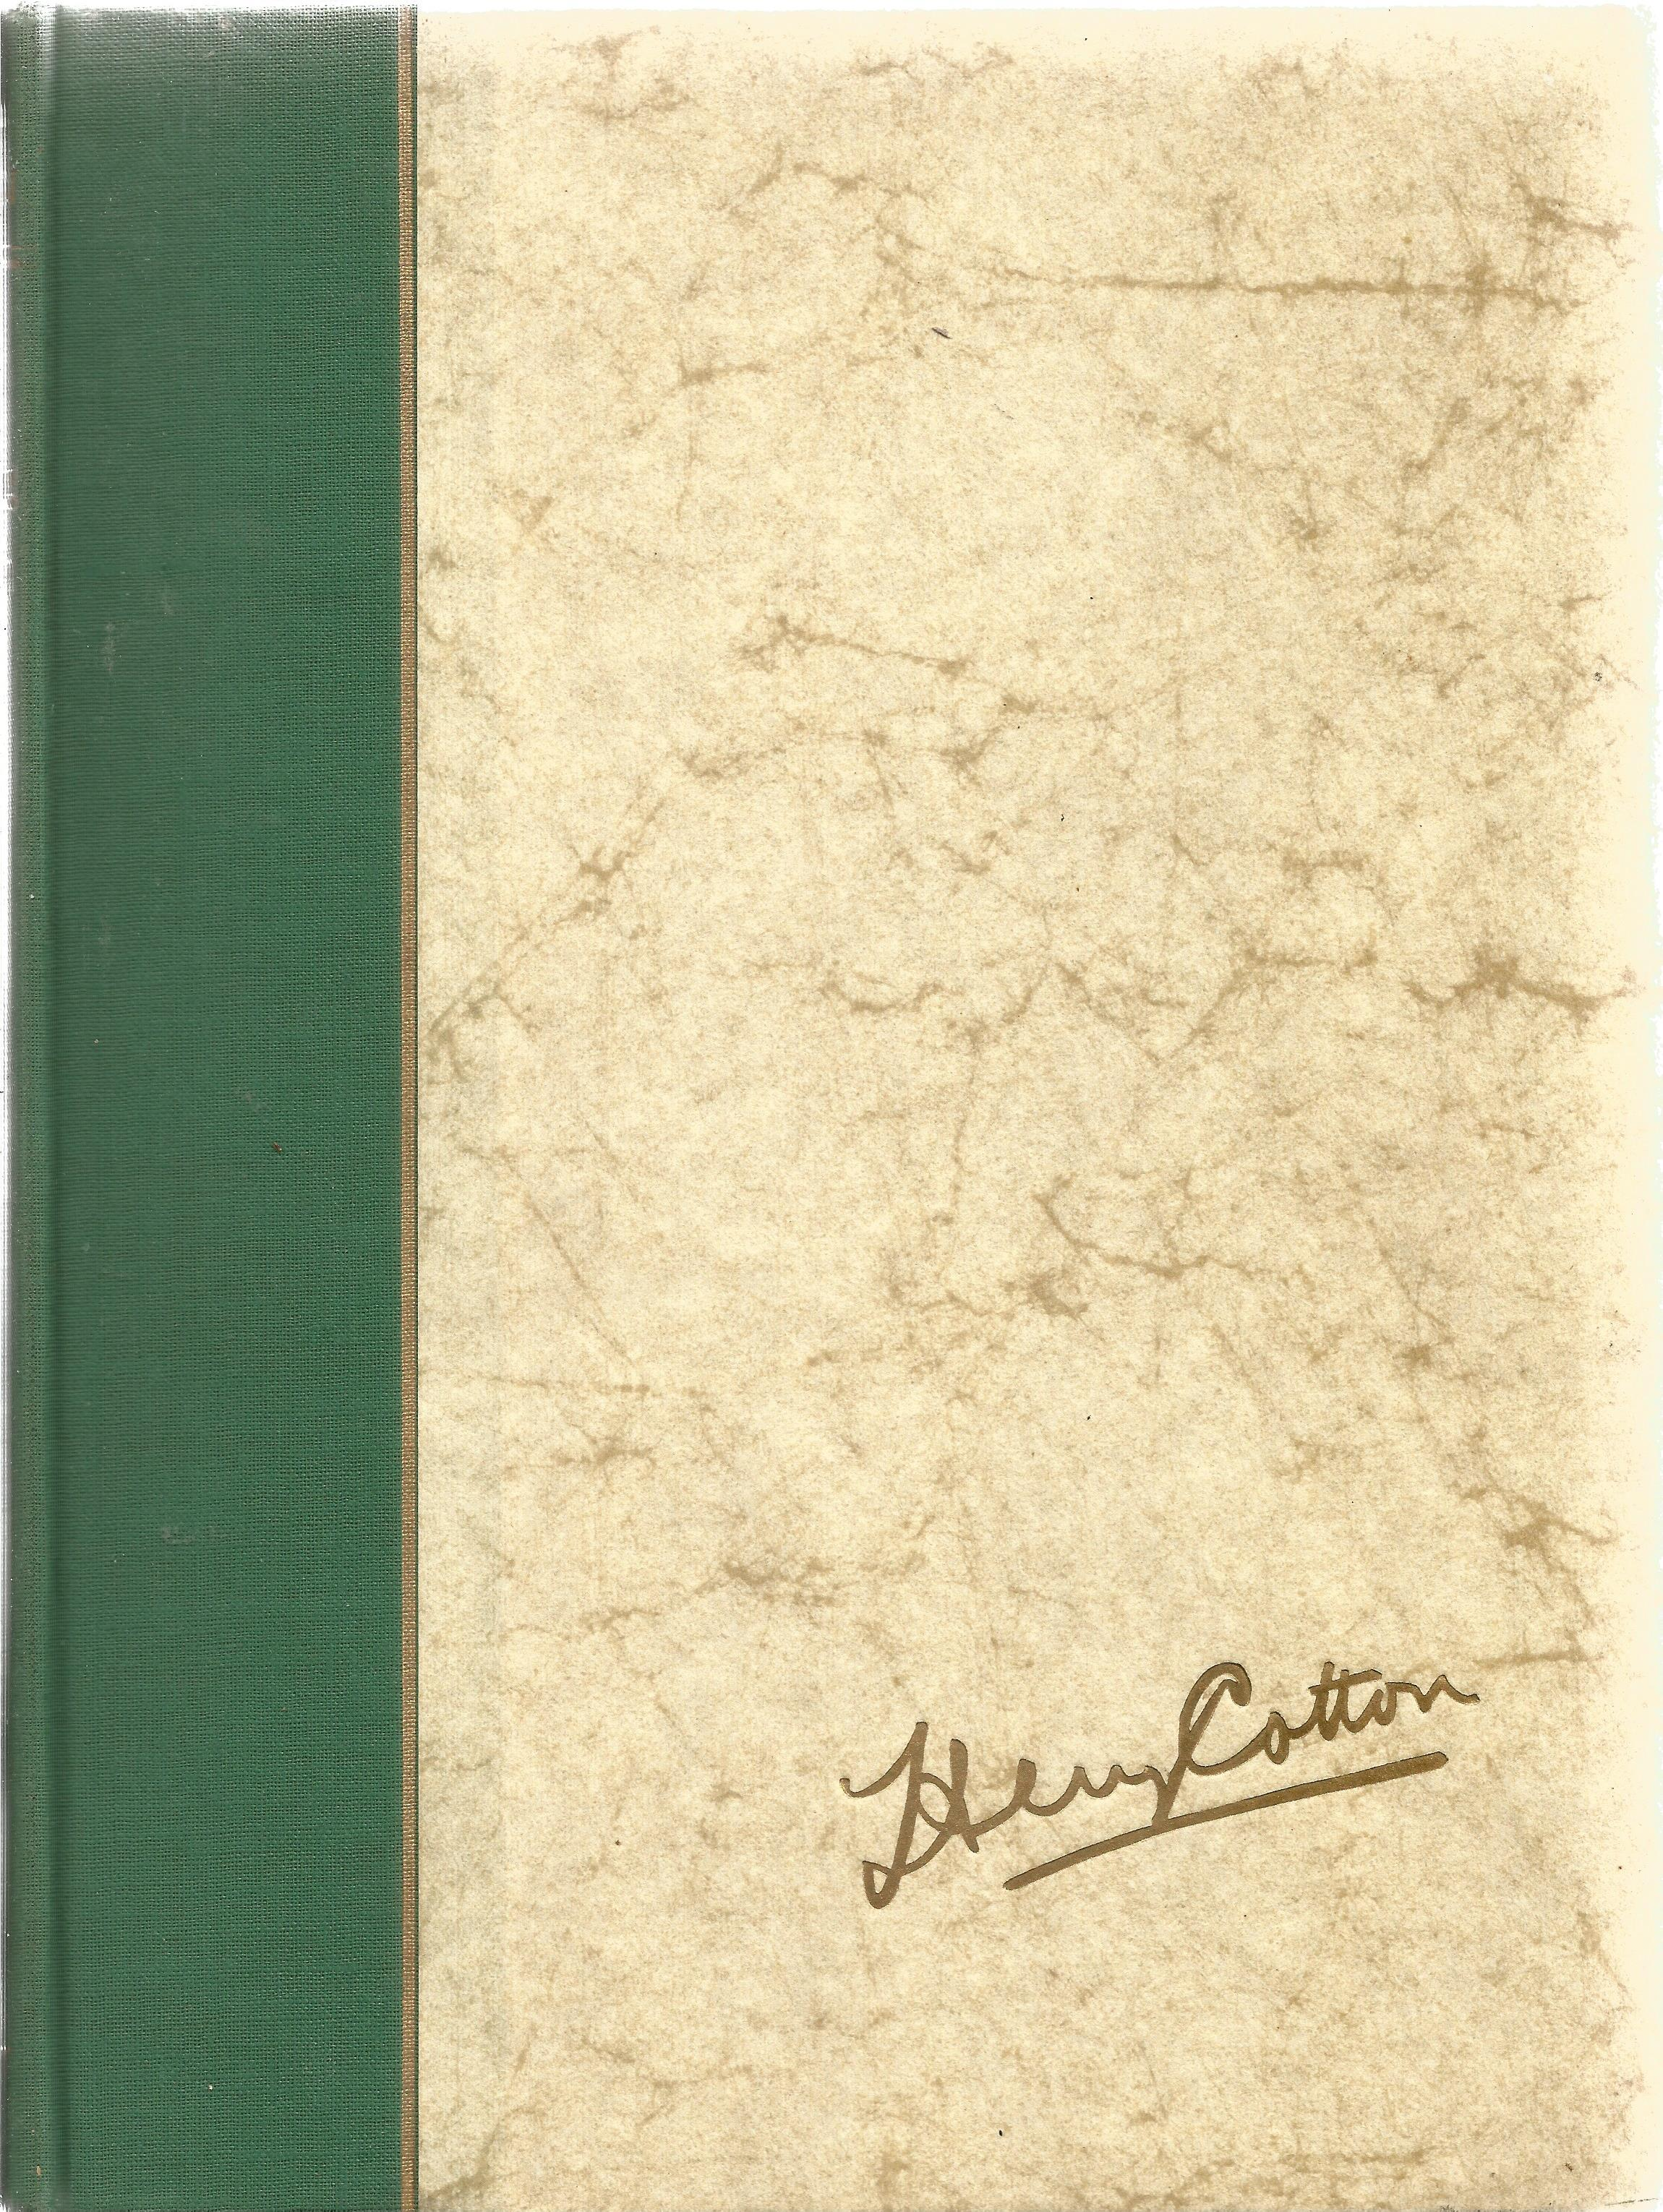 Sir Archibald McIndoe Family Photo Album plus 5 Hardback Books from His personal collection - Image 5 of 23